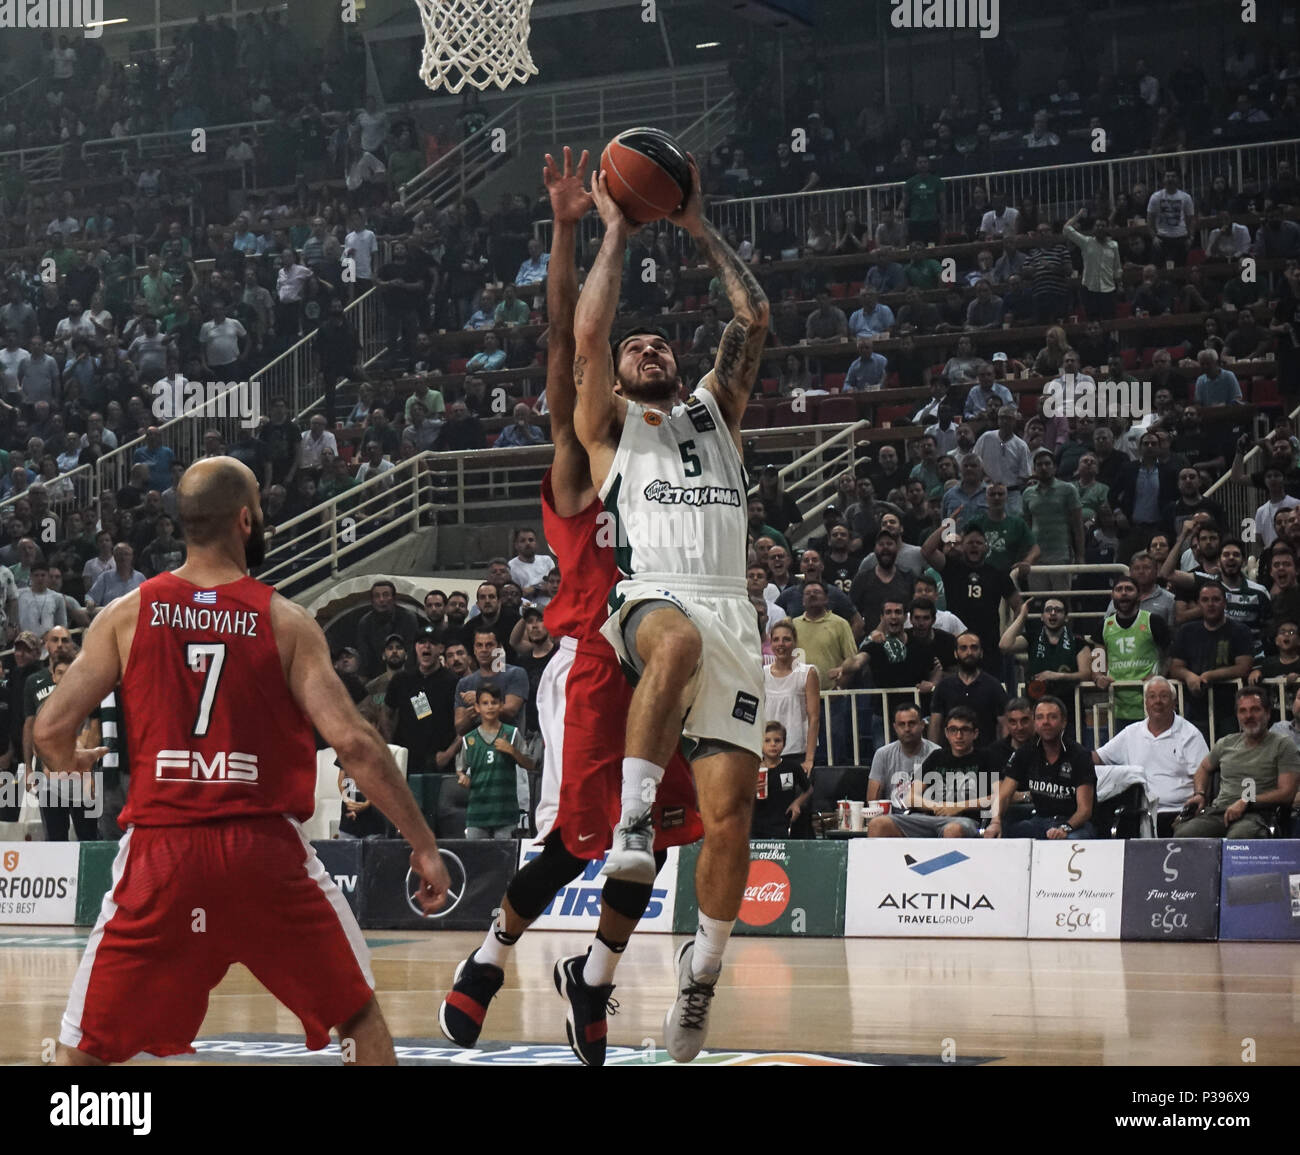 Olympiacos Bc Stock Photos & Olympiacos Bc Stock Images